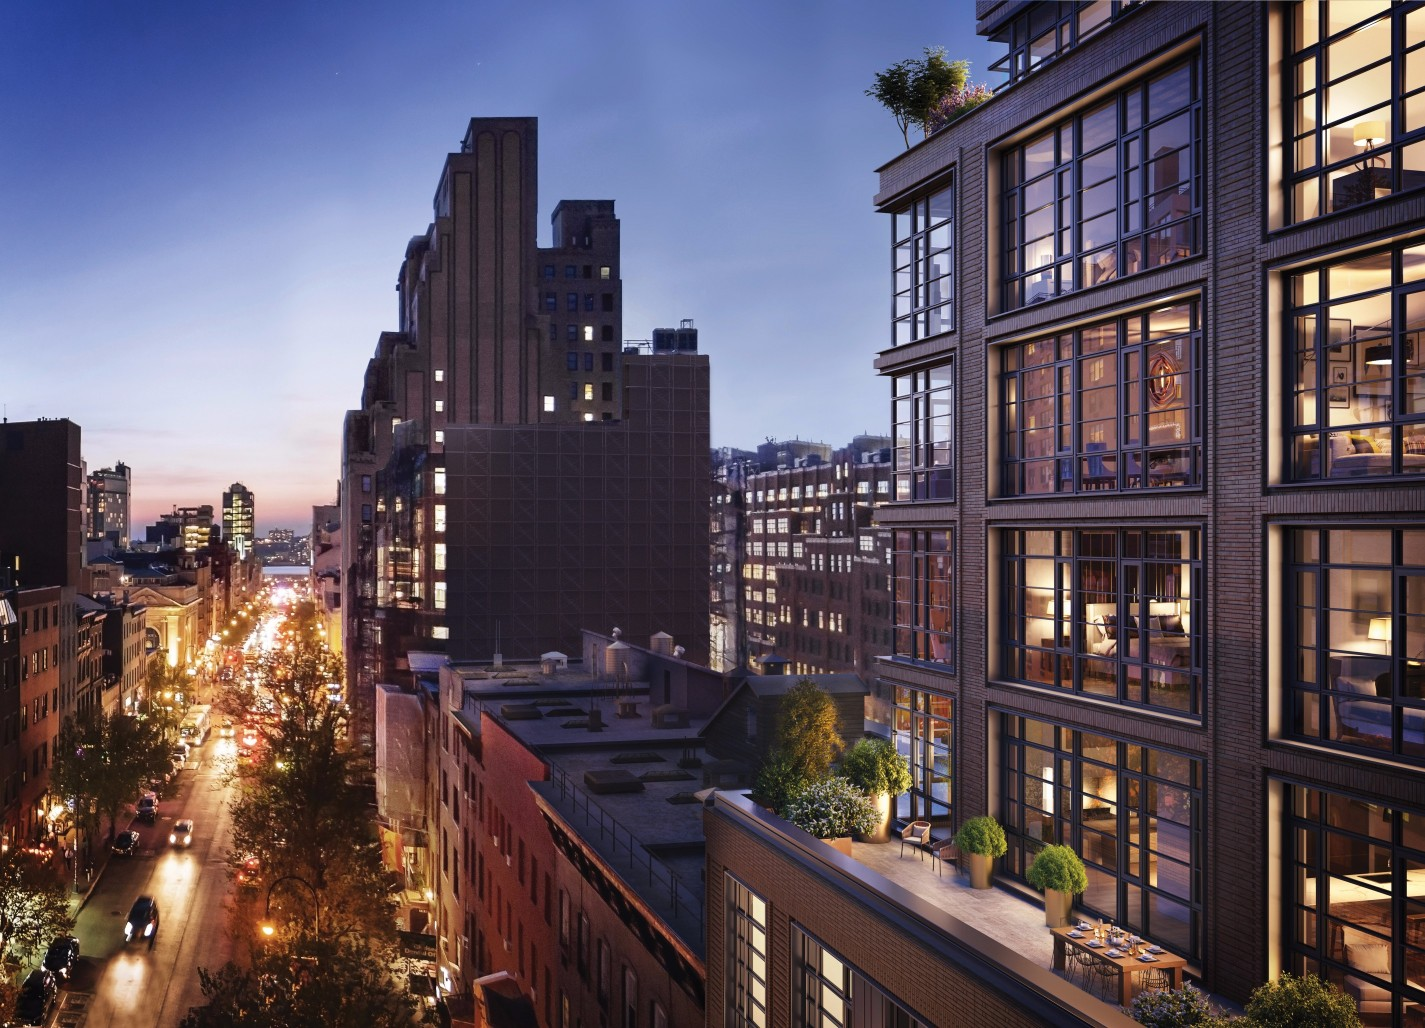 The Finest in Luxury Real Estate: 211 West 14th Street